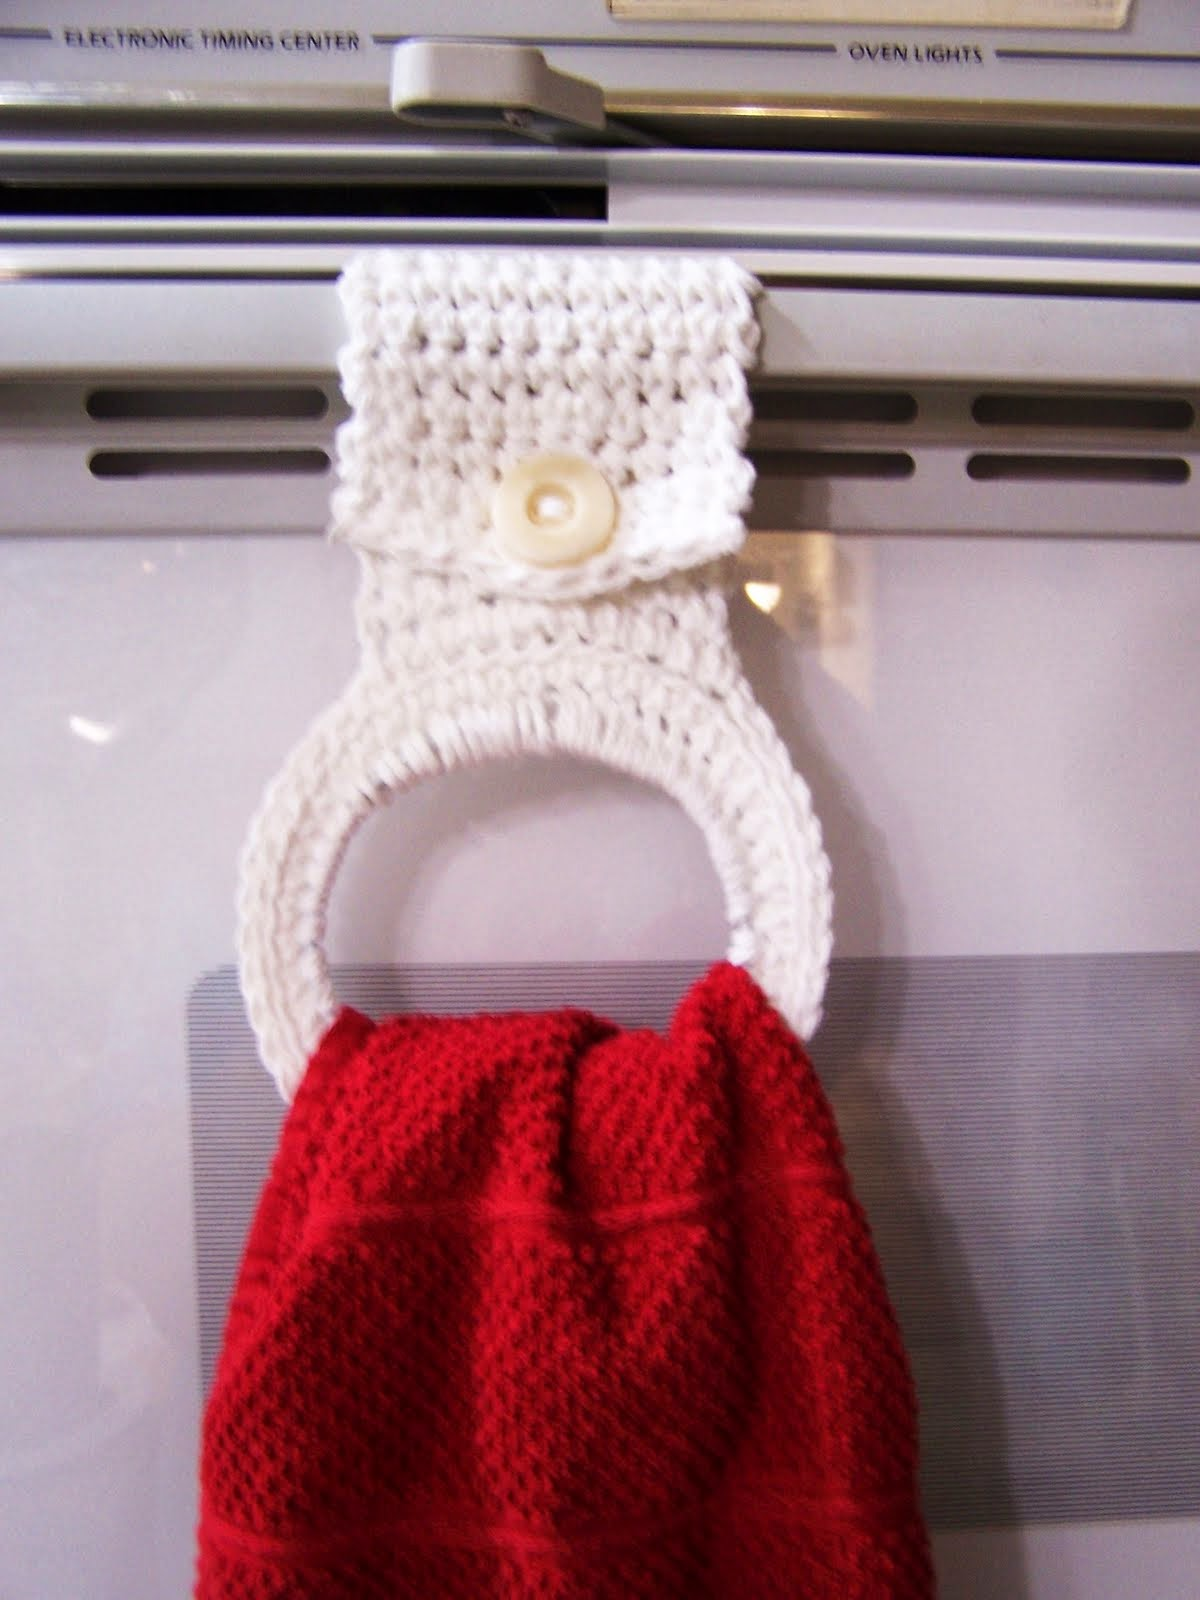 Crochet Topped Kitchen Towel | Buttonless Crochet Top